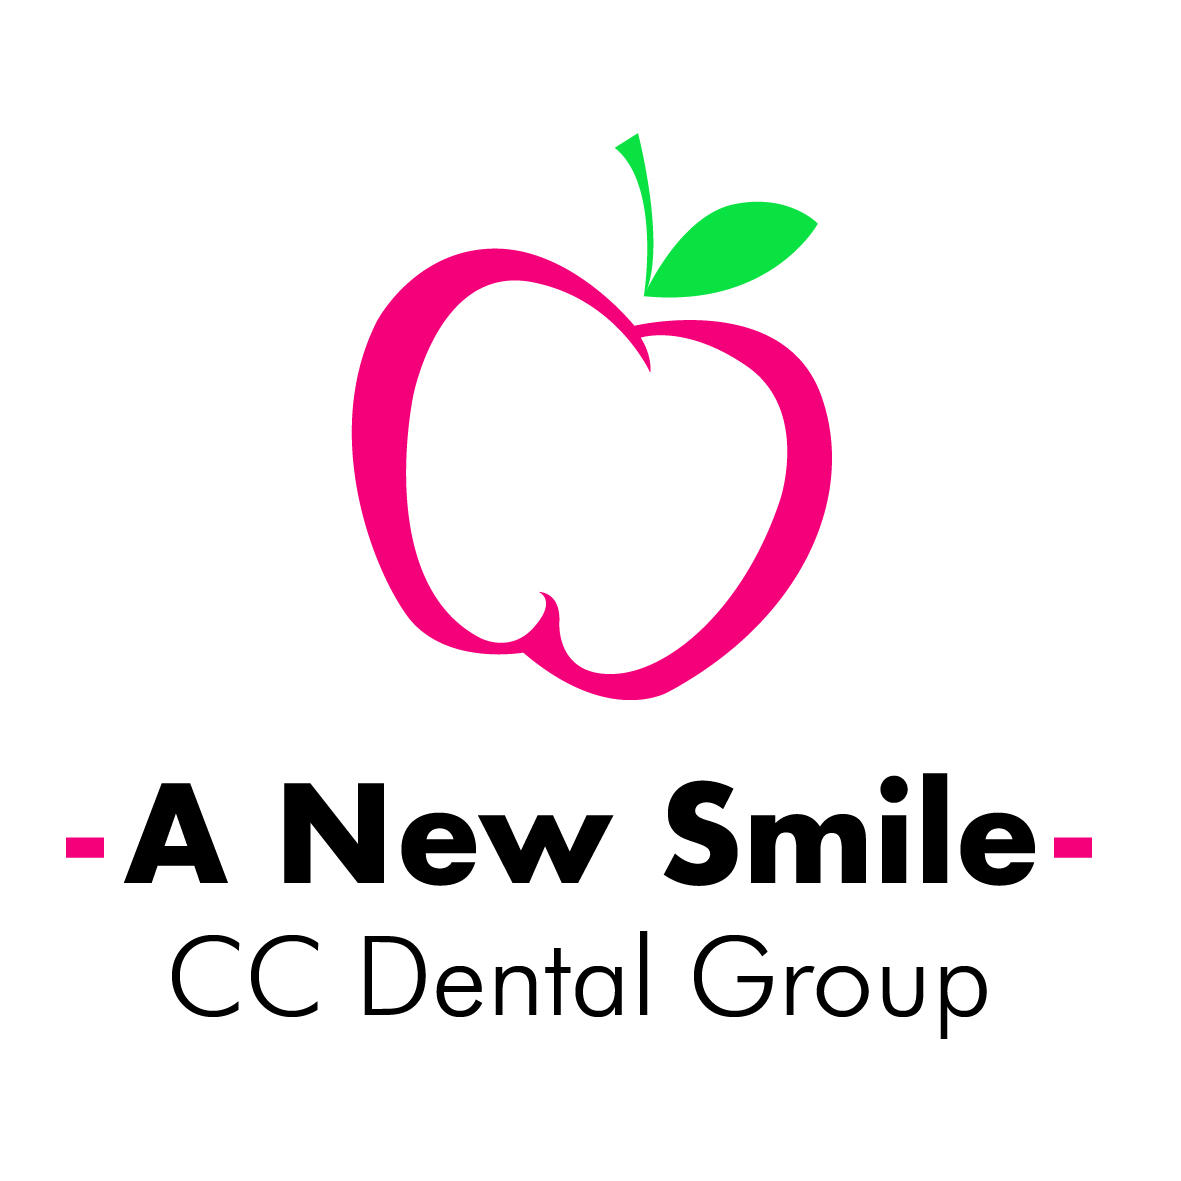 A New Smile CC Dental Group